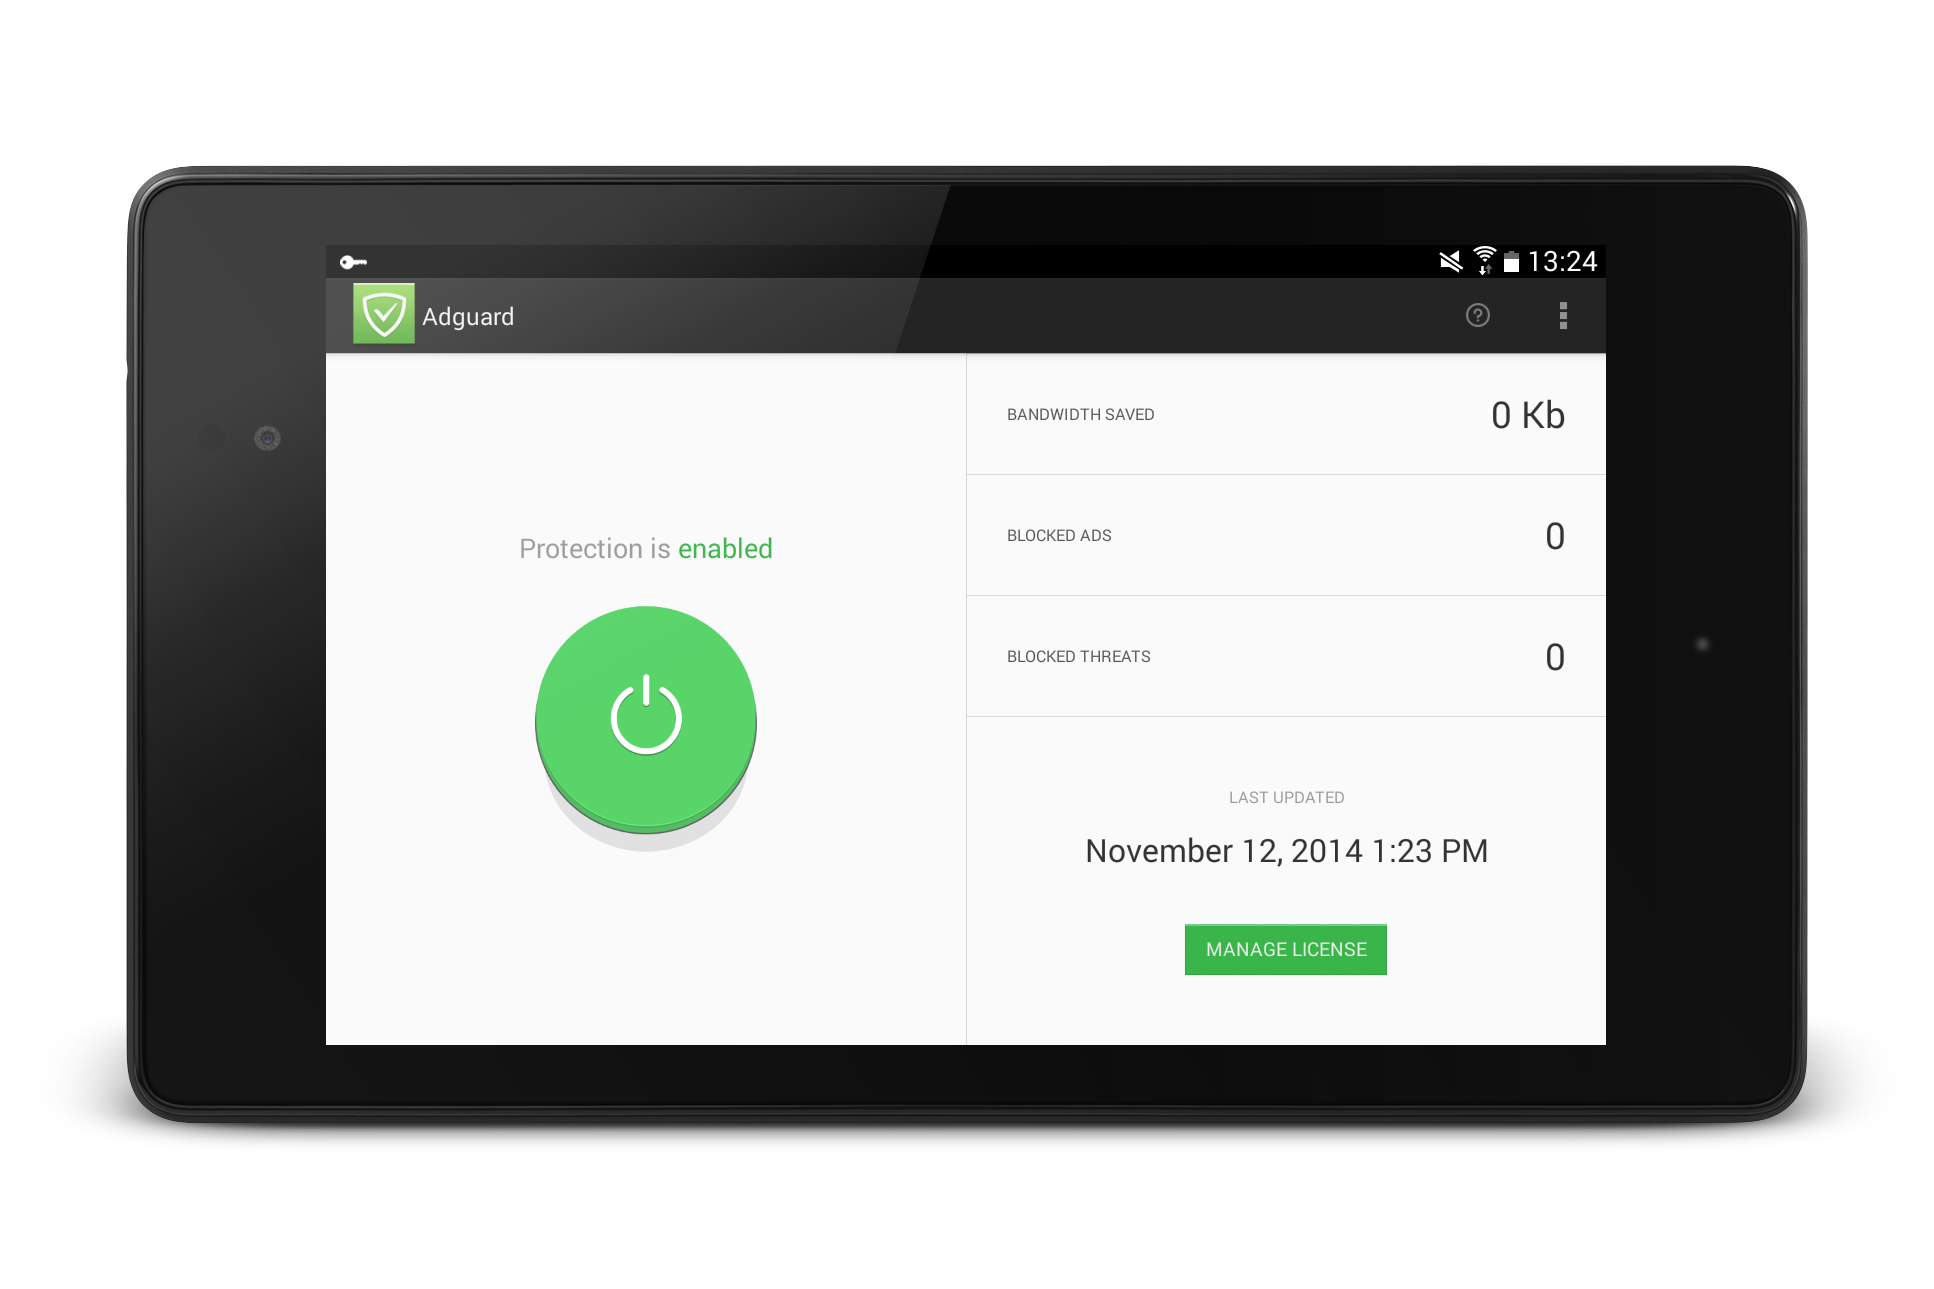 11/13/2014 - Adguard app for Android